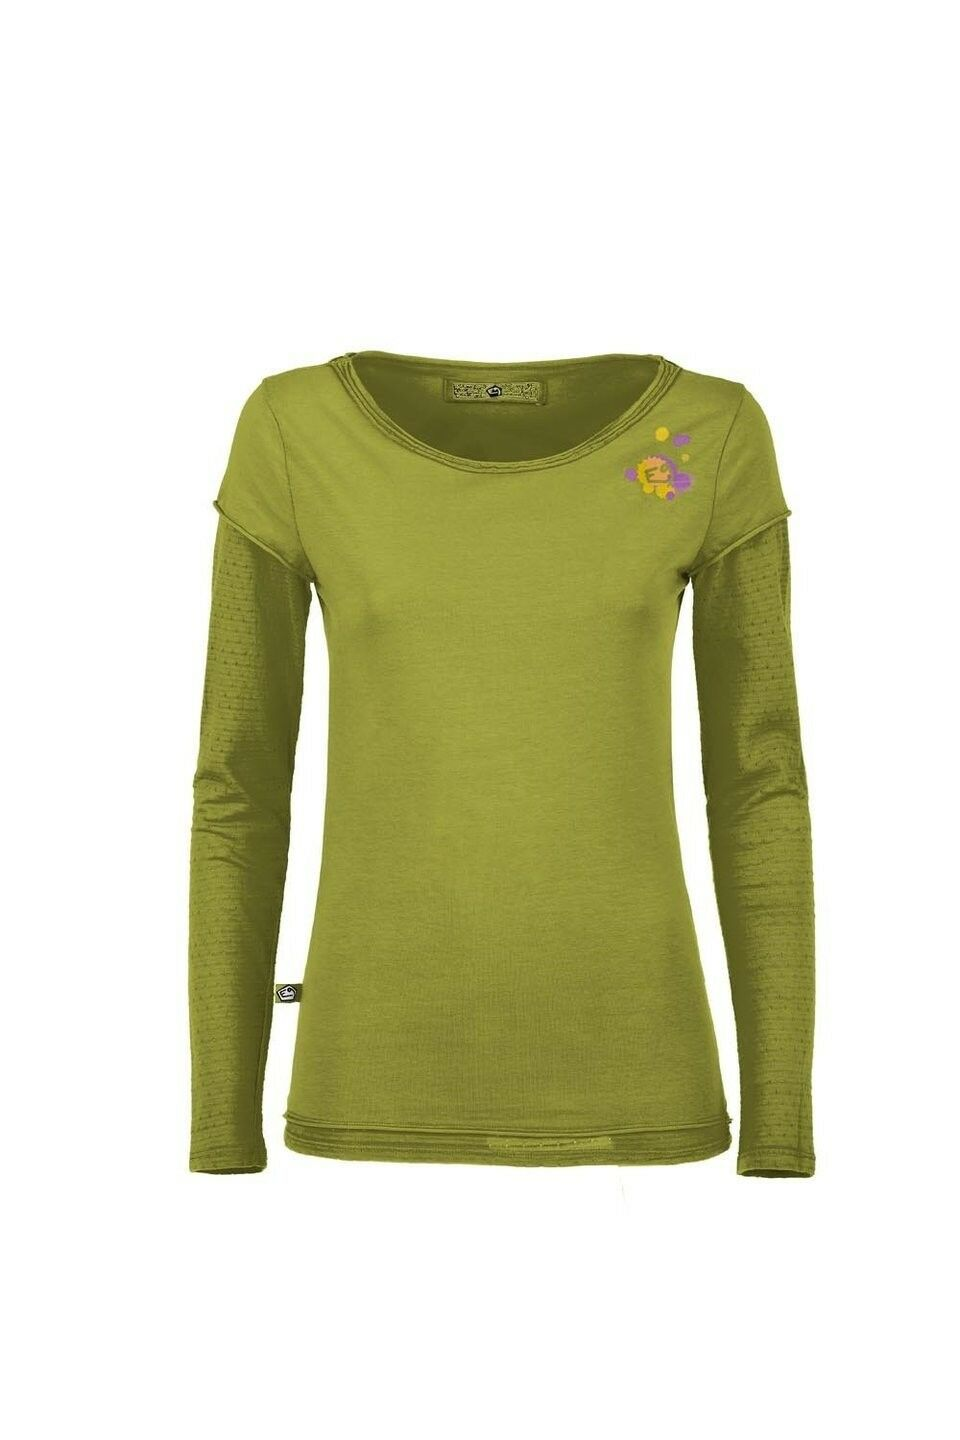 E9 Fede, Long  Sleeve T-Shirt for Ladies, Apple  welcome to choose